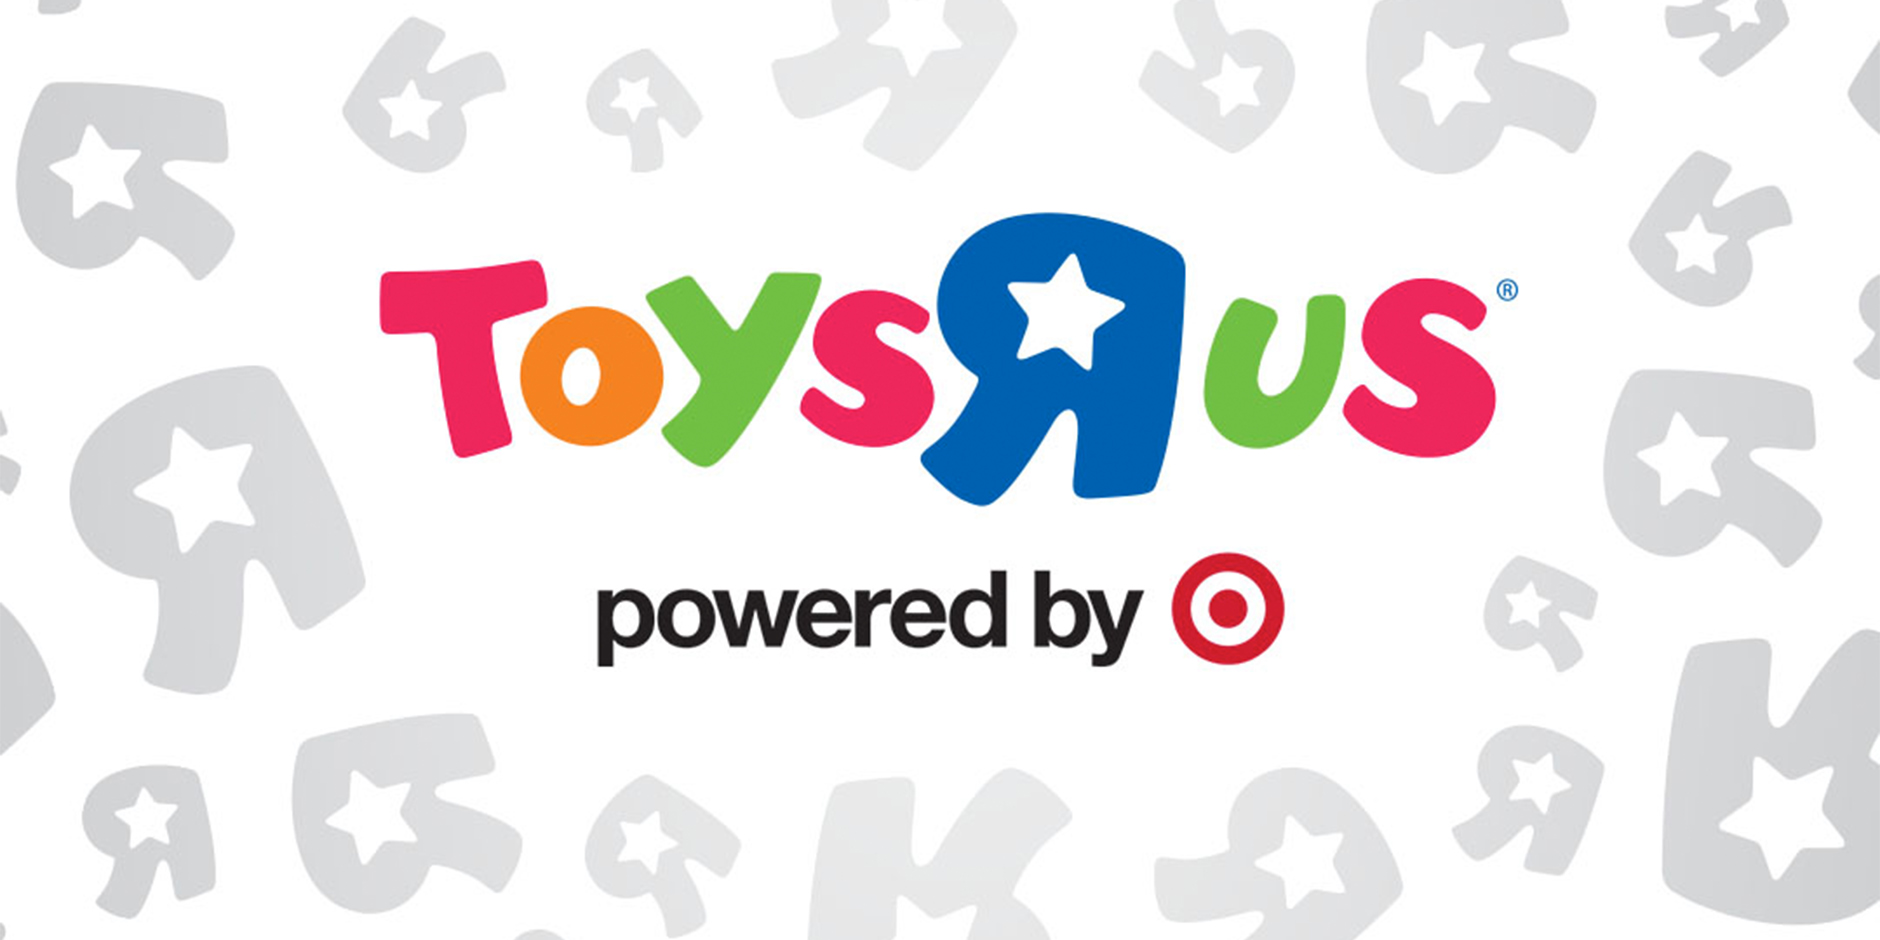 The colorful Toys R Us logo with black text powered by Target and gray R icons on a white background